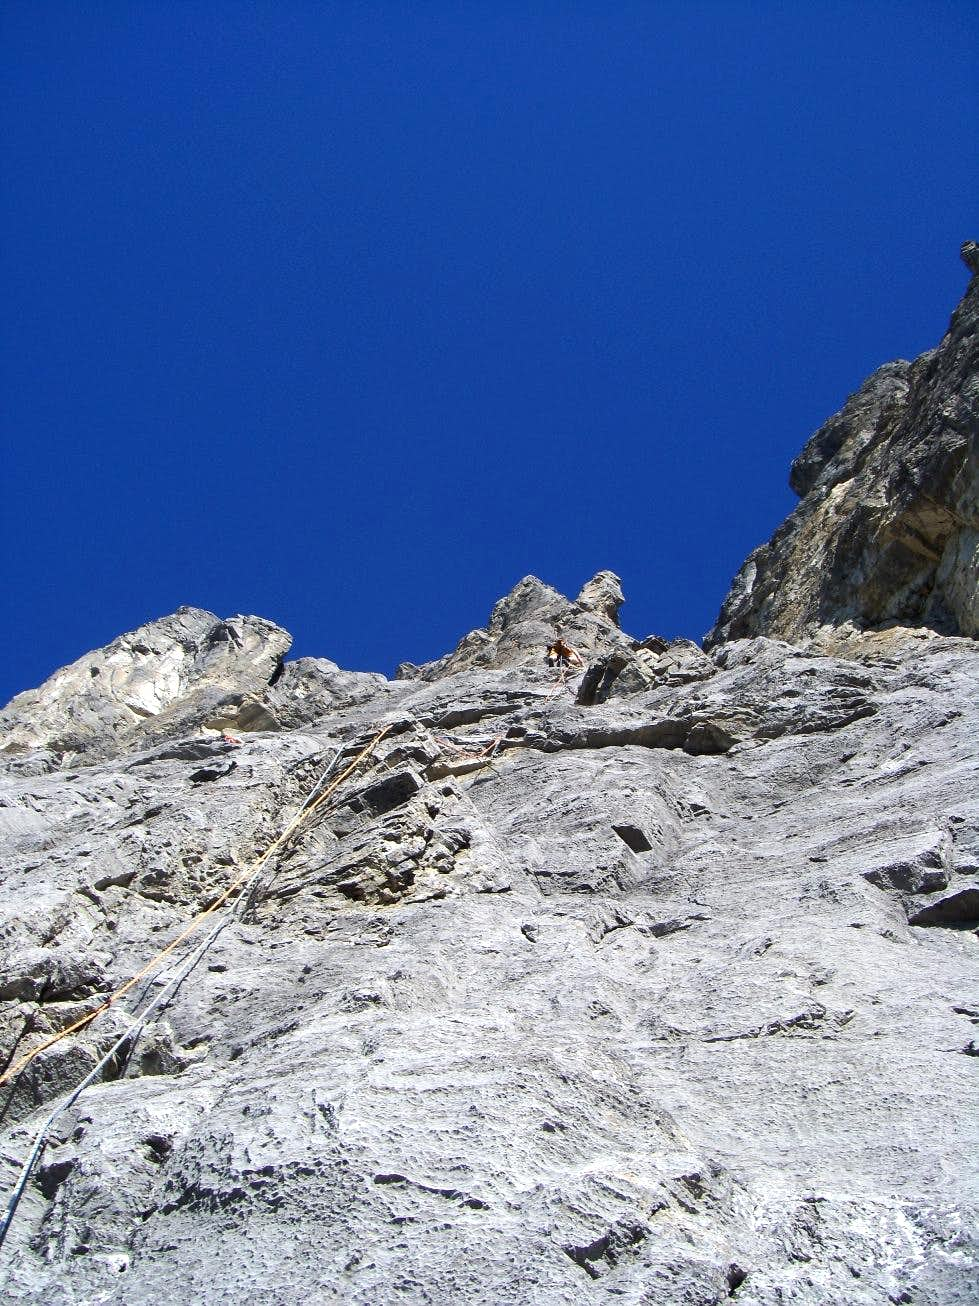 Pony Express, 5.10a, 6 Pitches